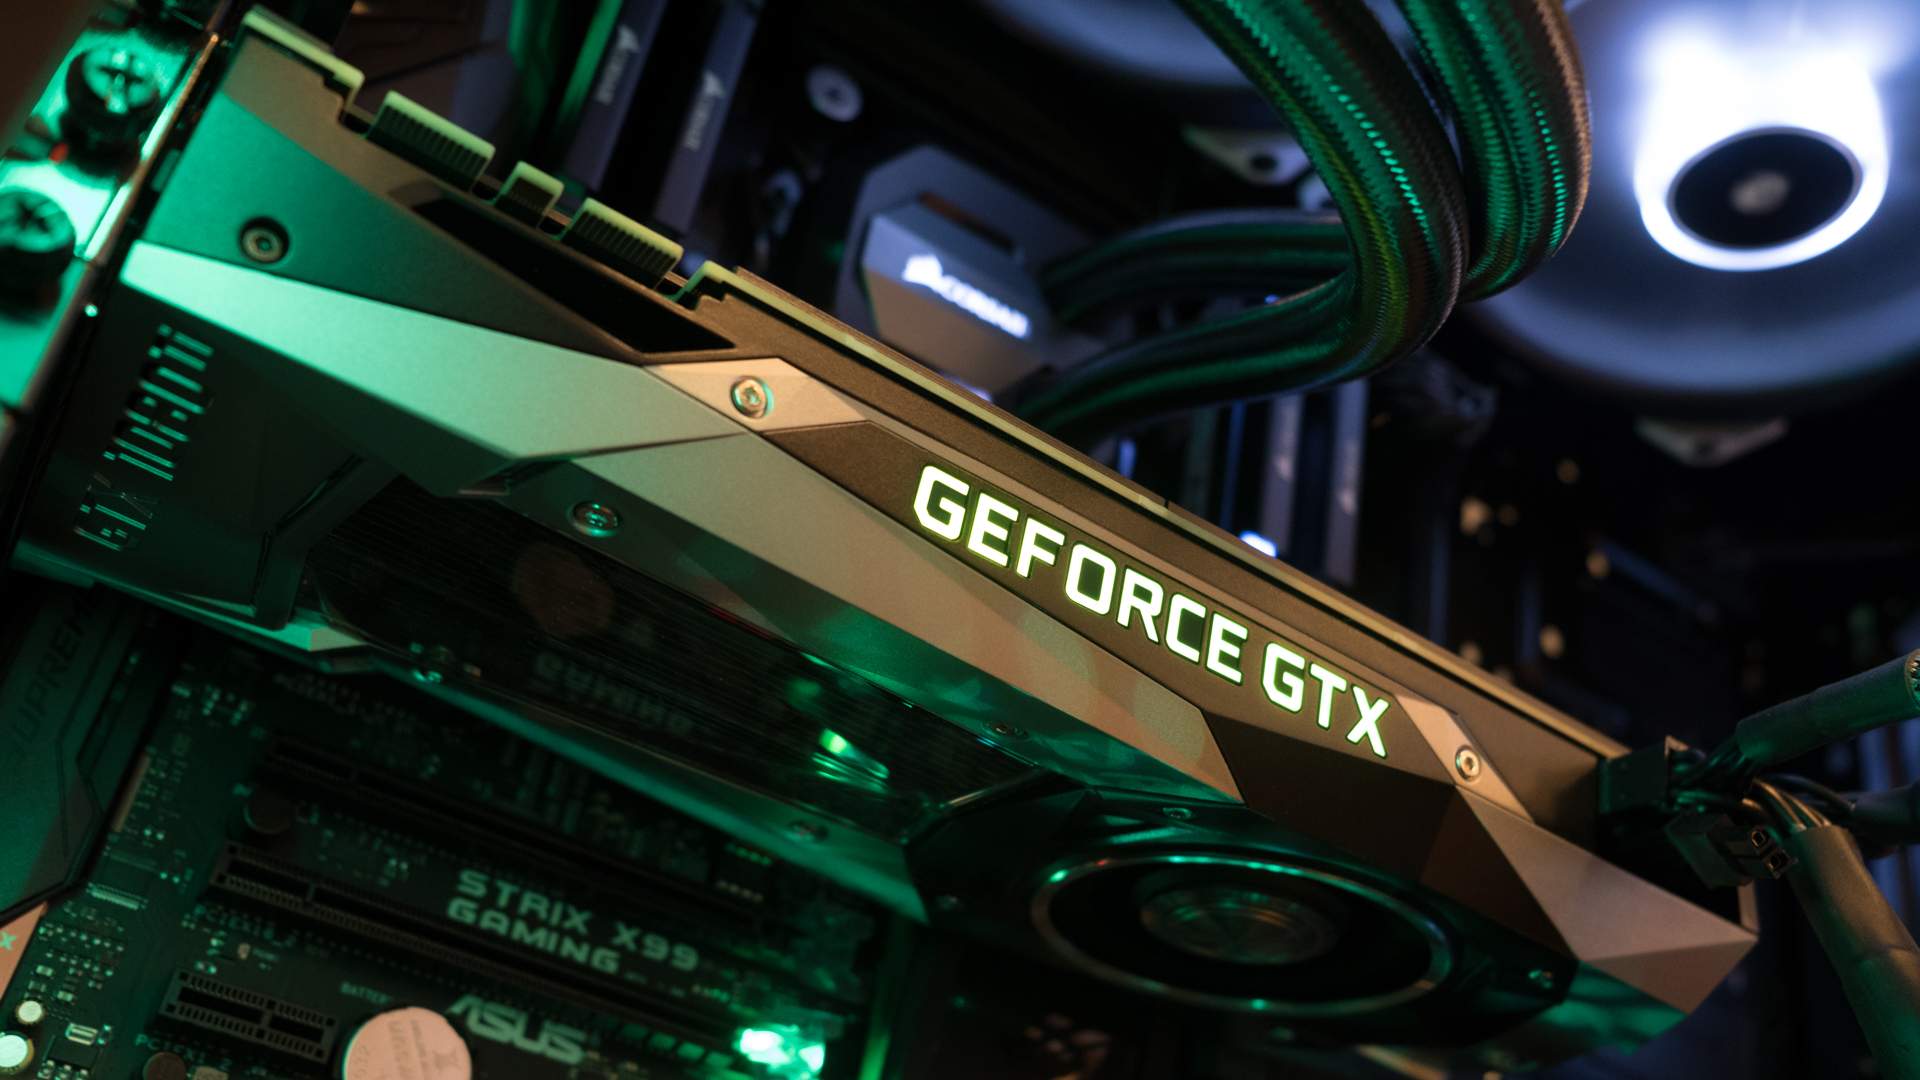 GTX 1660 Ti could be 20% faster than GTX 1060 according to